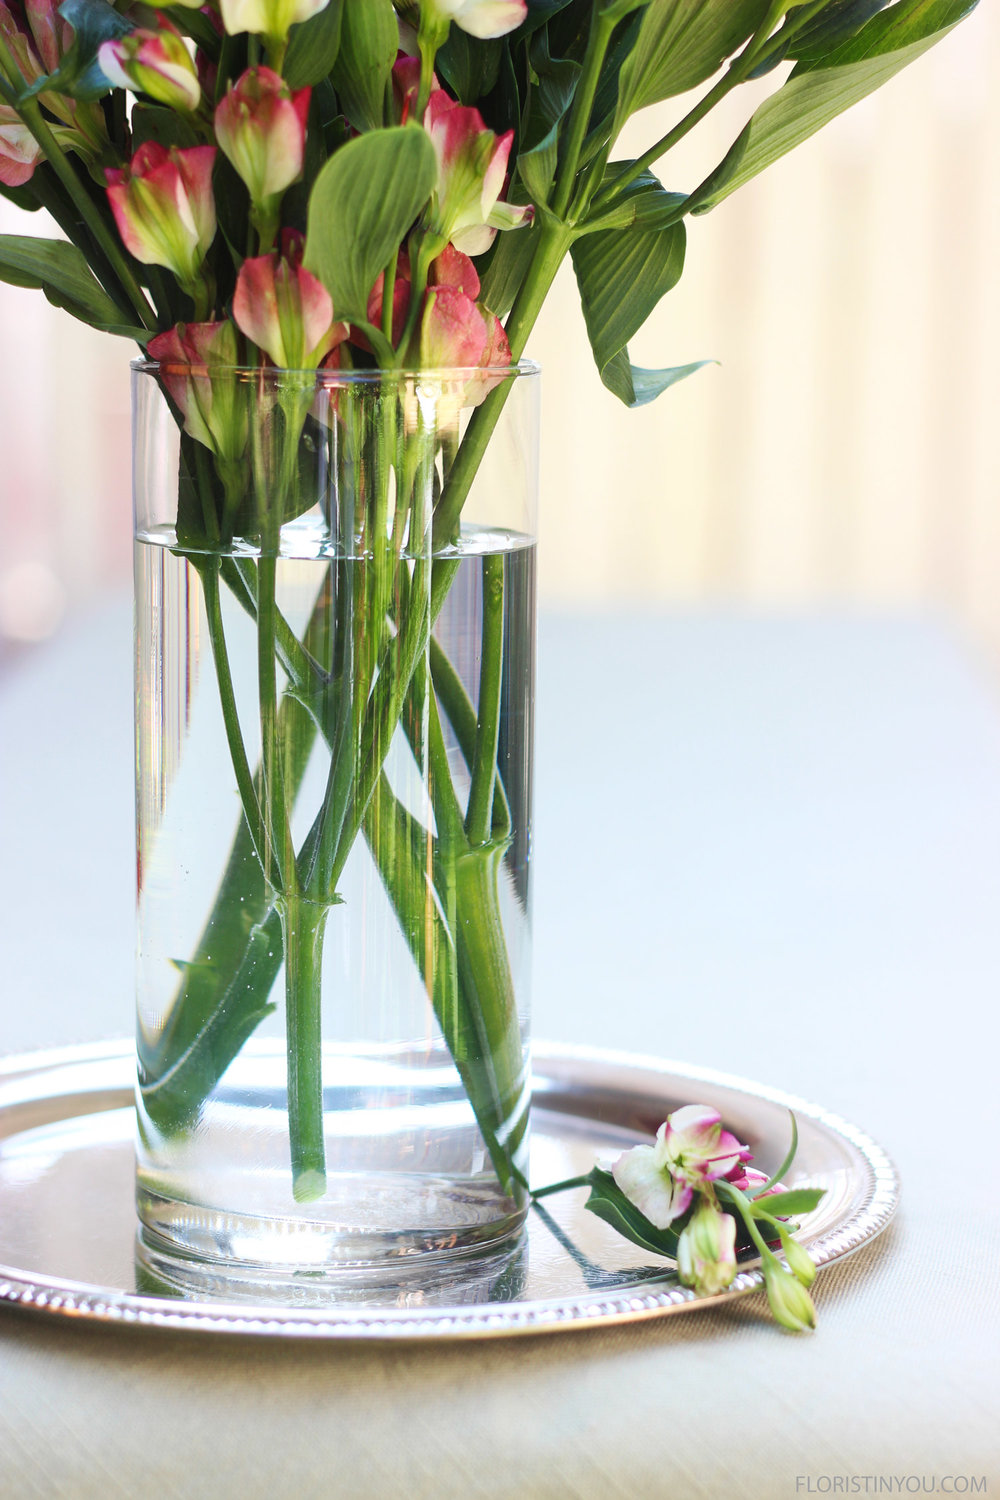 The stems crossing is part of the clean design of this arrangement.